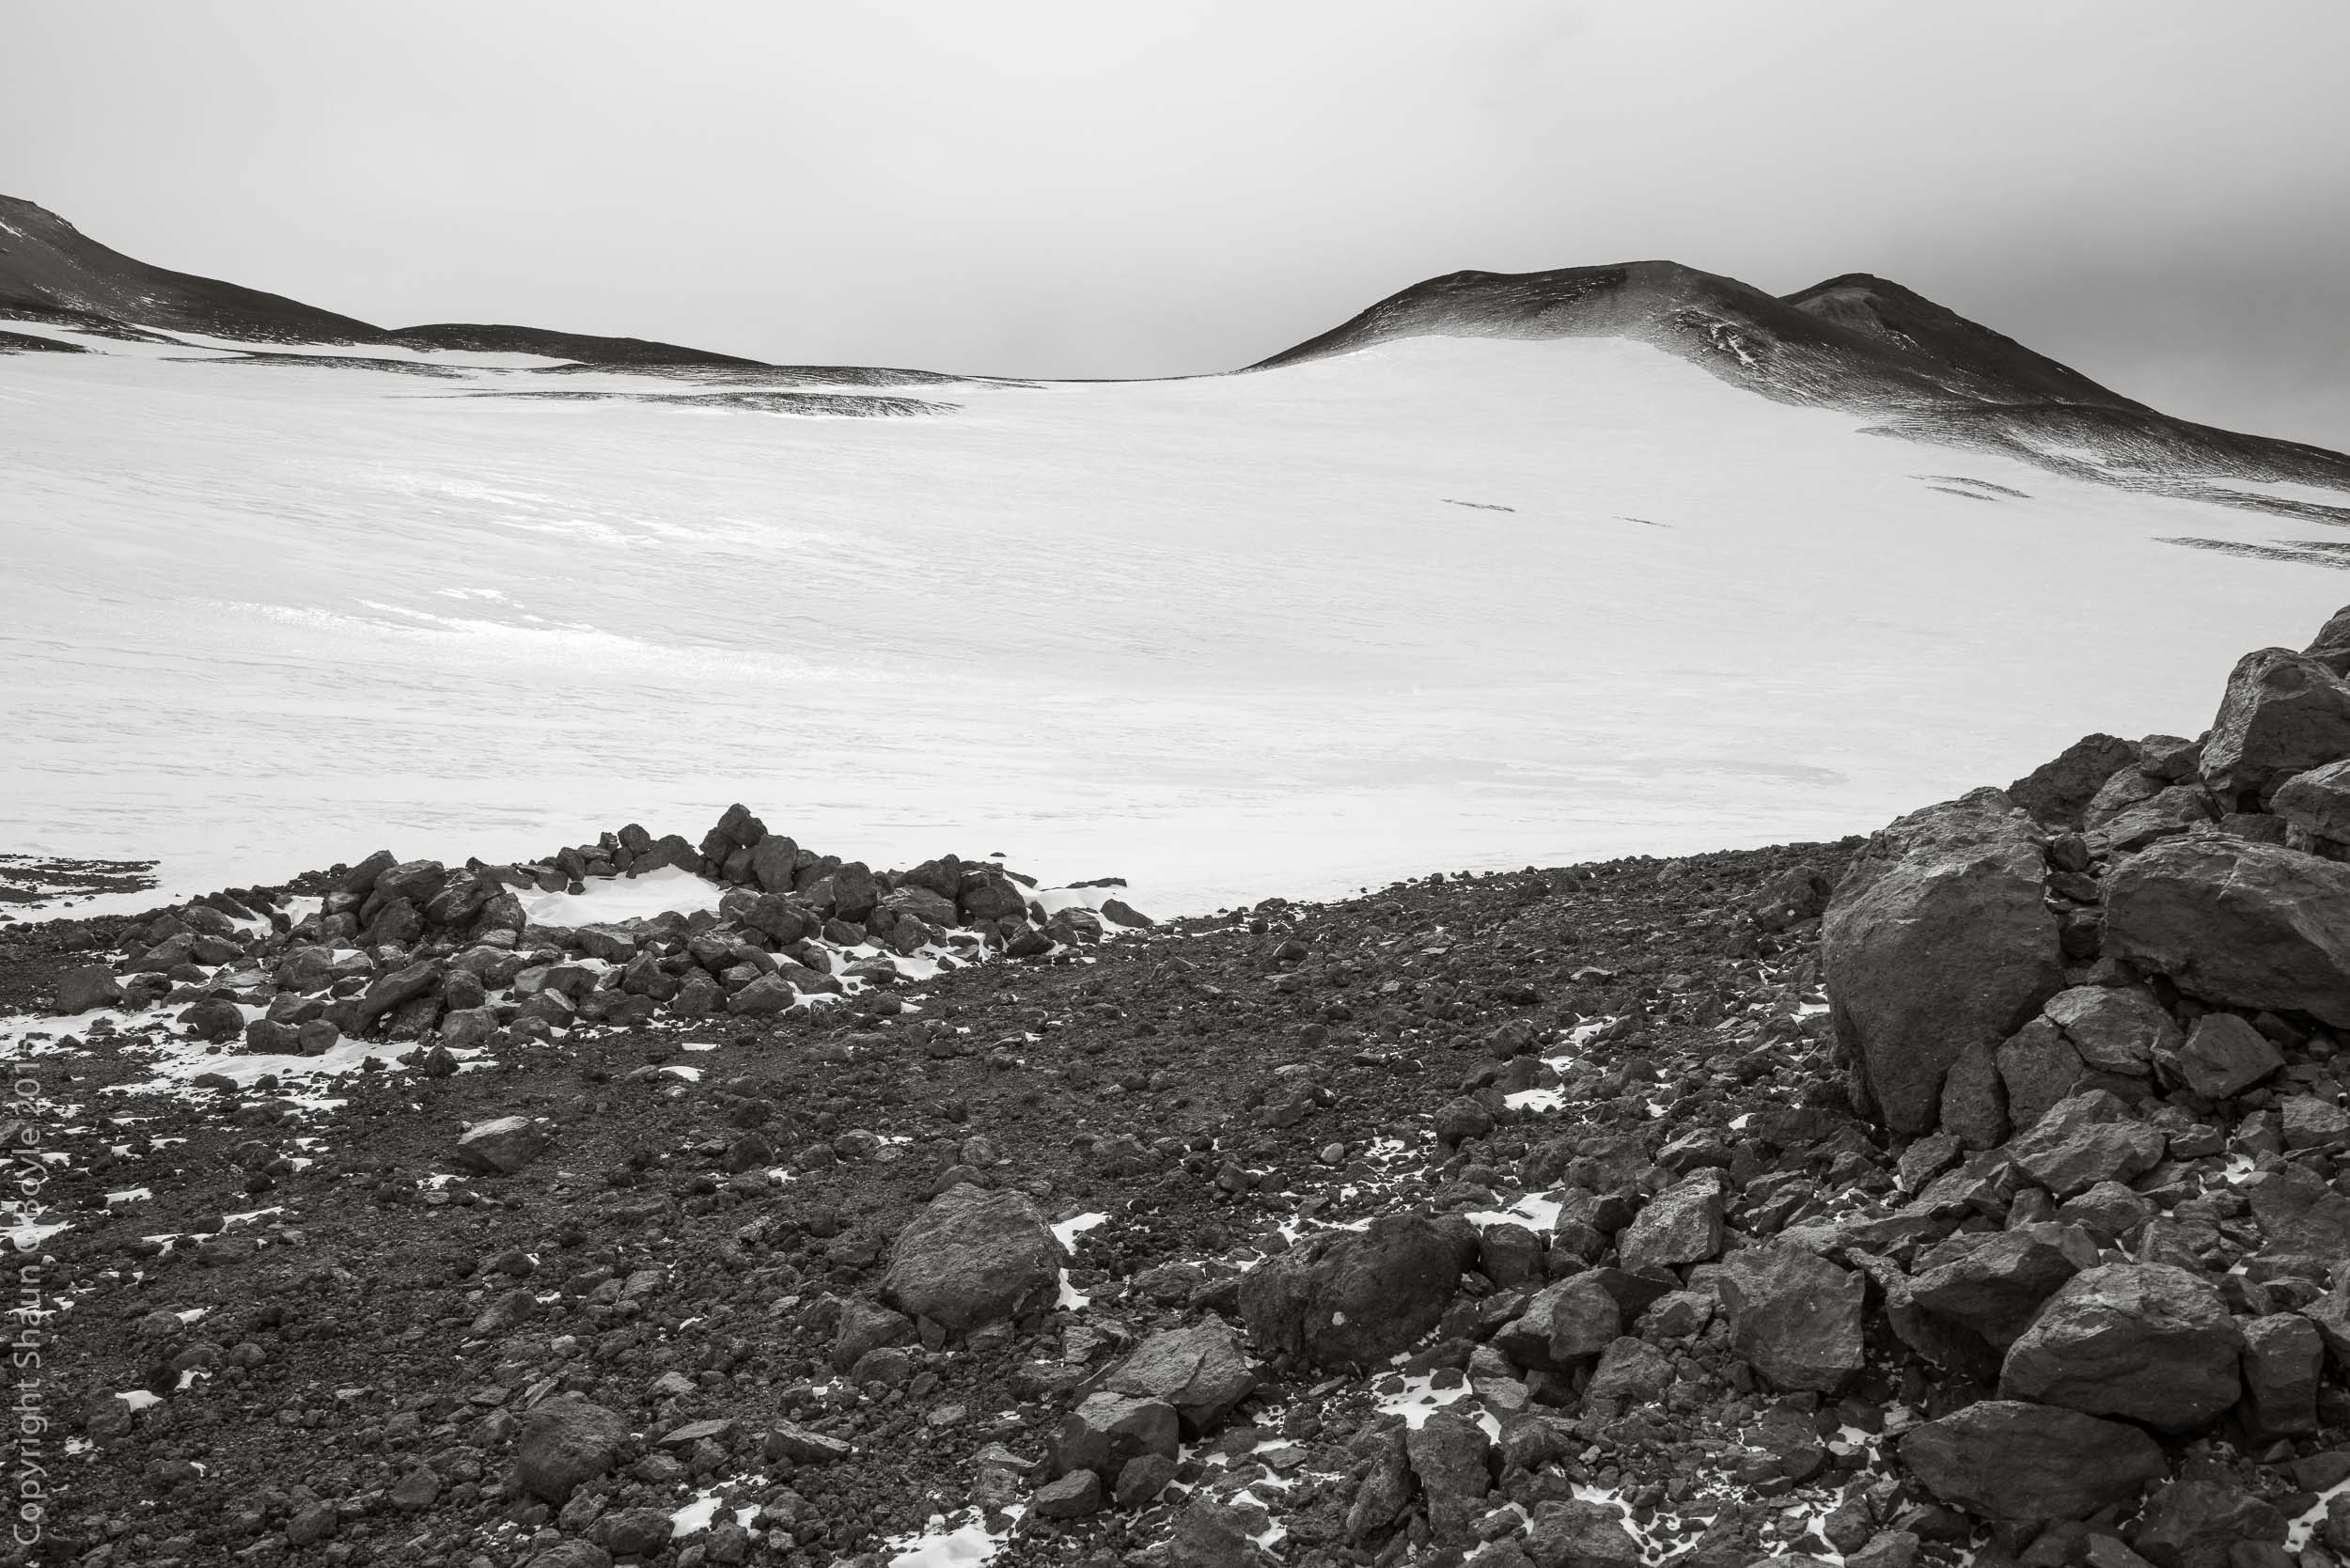 Wilson's Igloo, a stone igloo built by Edward Wilson, Birdie Bowers and Apsley Cherry-Garrard during the 1911 Worst Journey in the World expedition. At that time the only known emperor penguin rookery was located at Cape Crozier, and they were attempting to collect emperor penguin eggs for study.